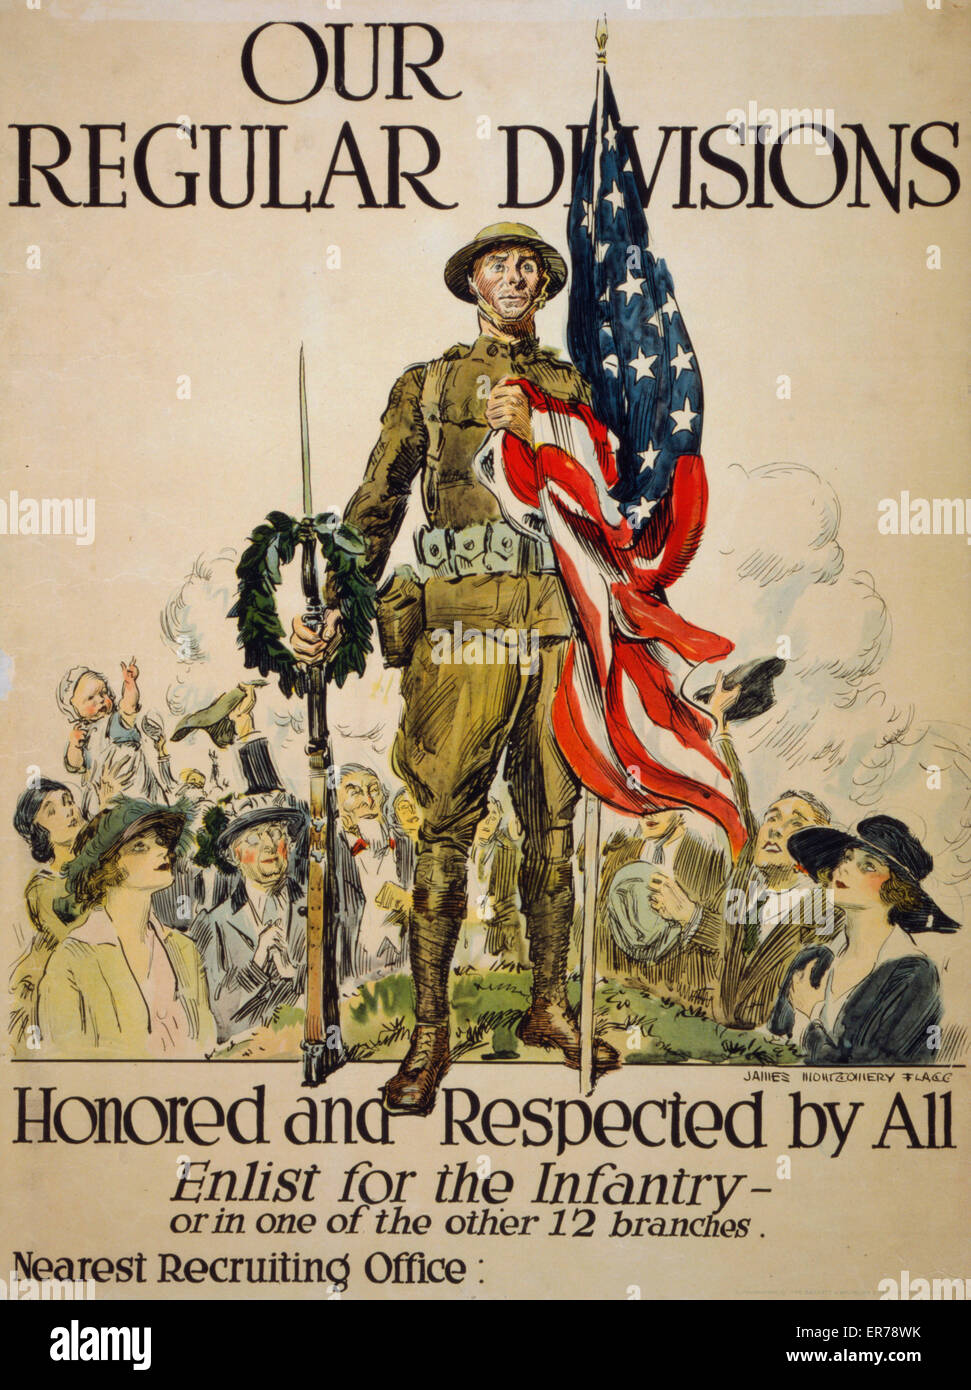 Our regular divisions, honored and respected by all Enlist for the infantry - or in one of the other 12 branches - Stock Image